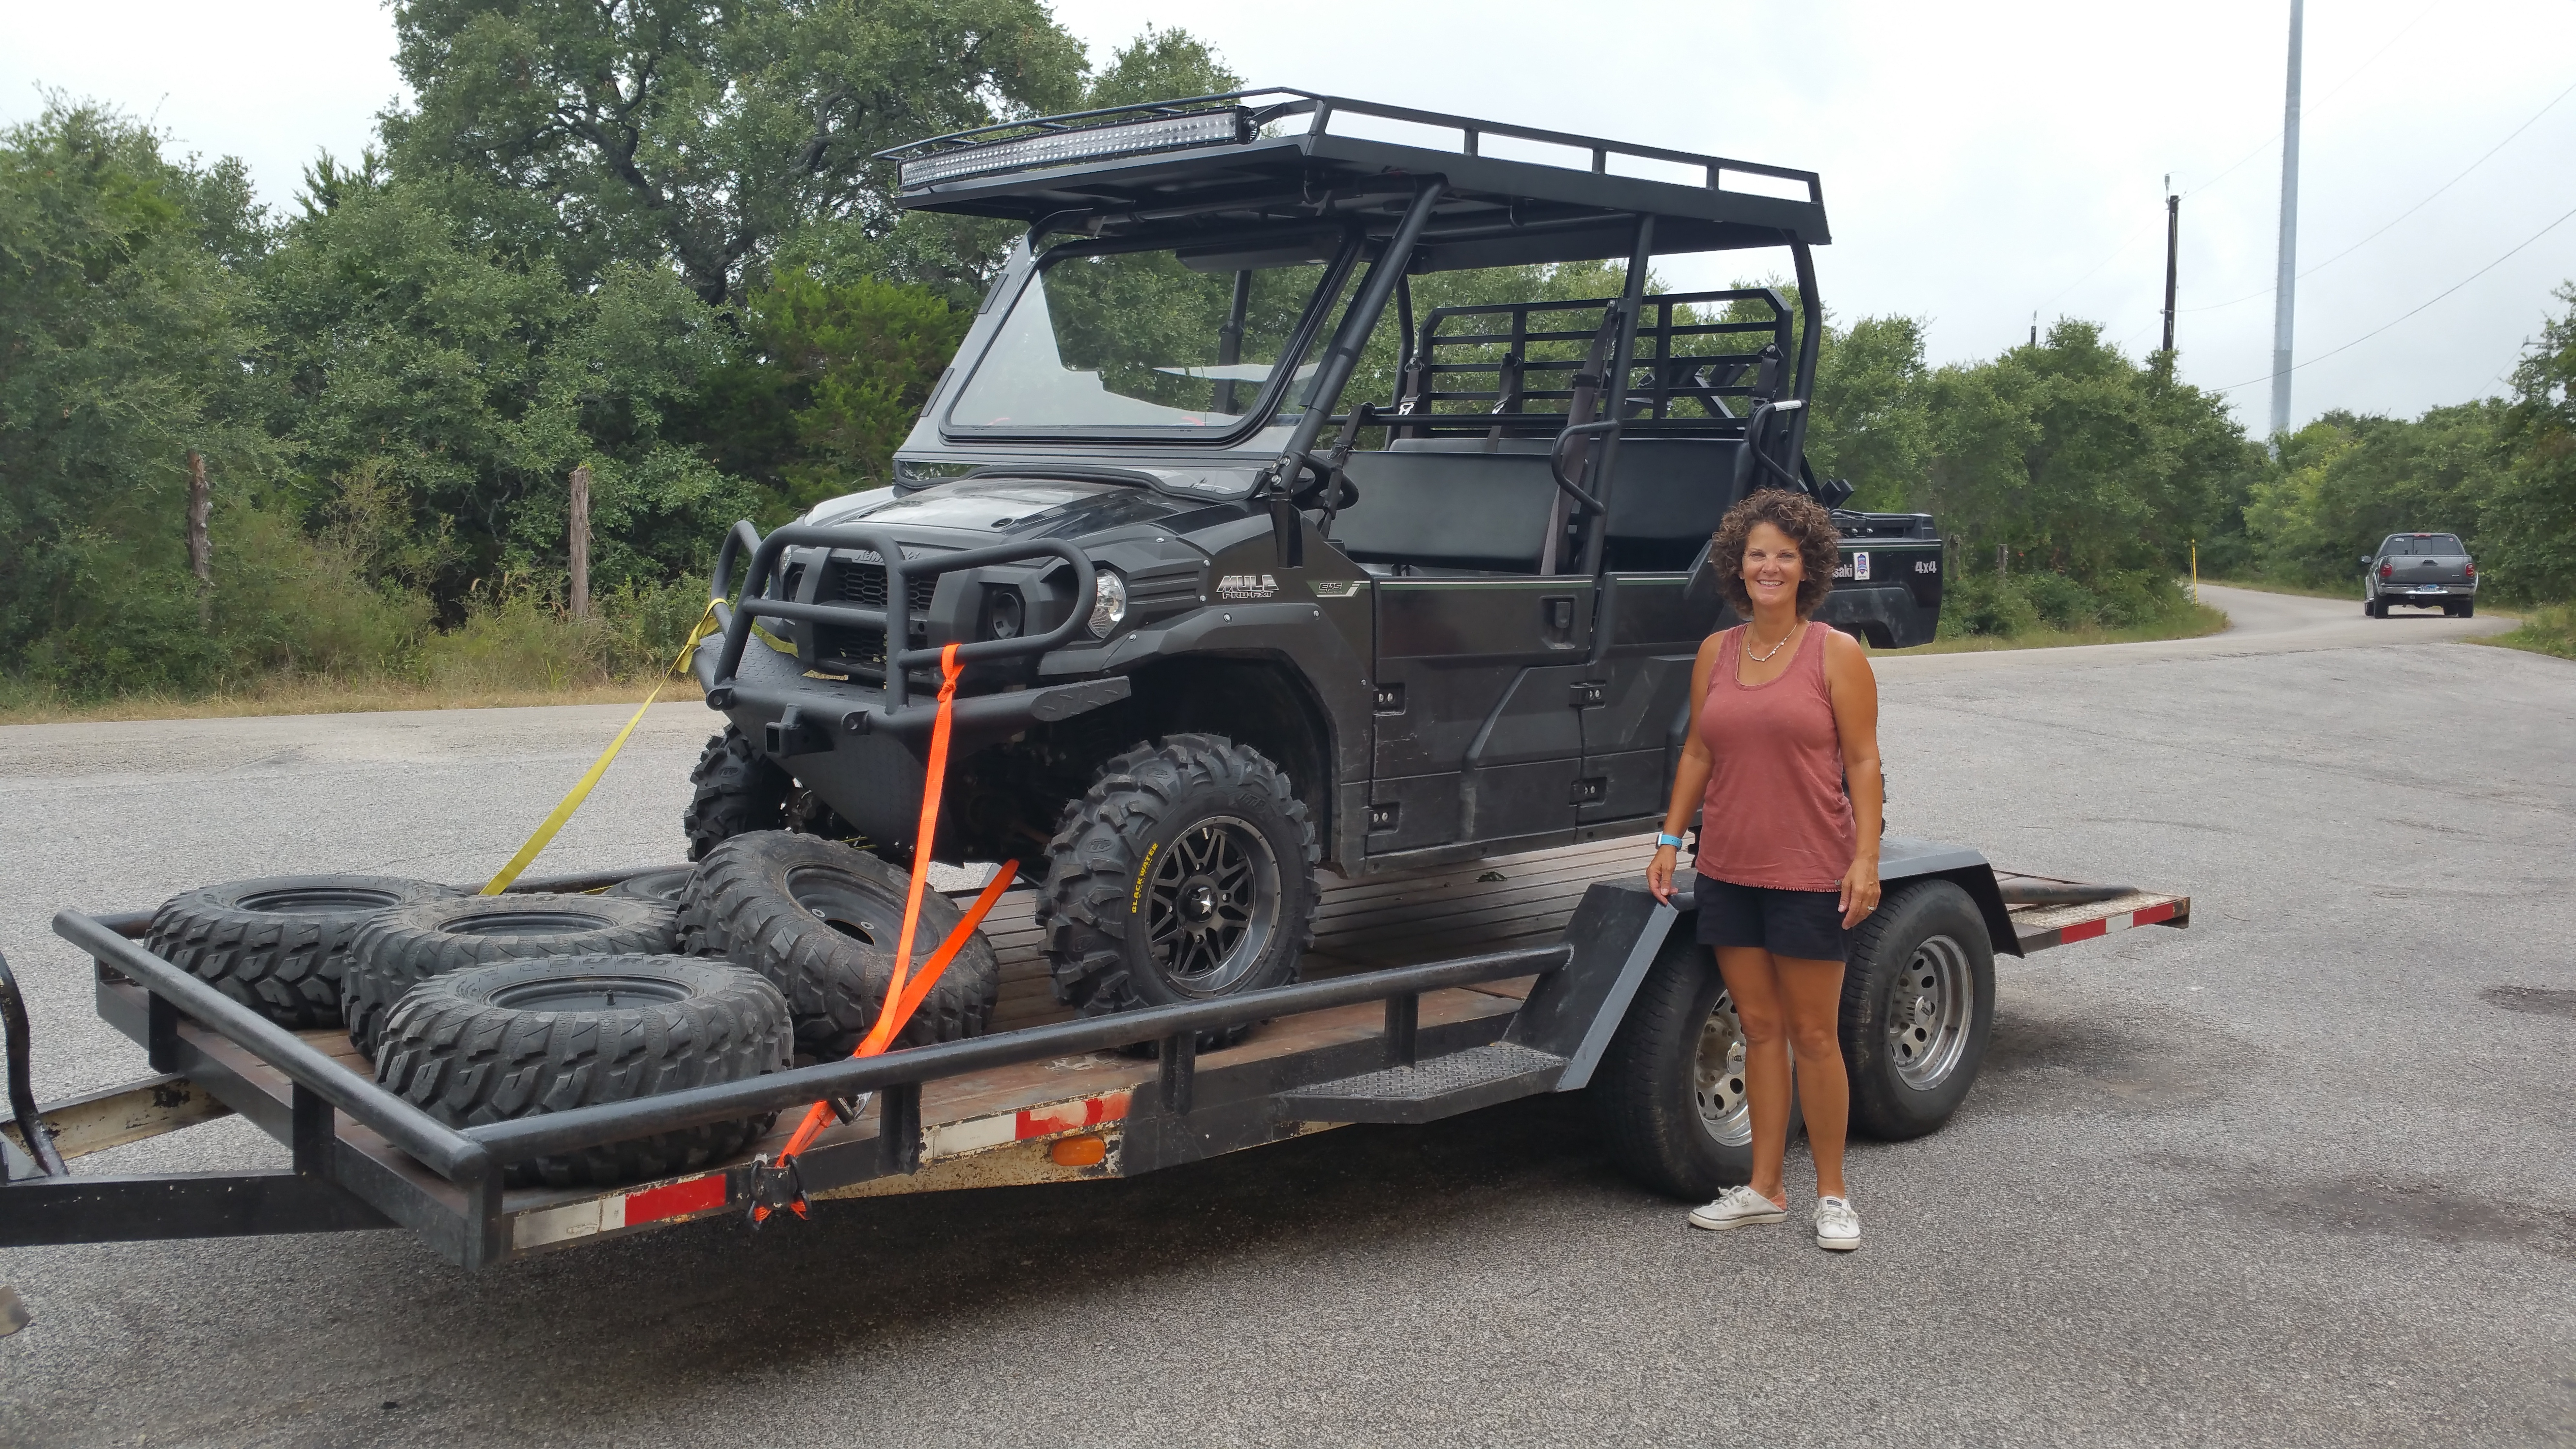 kawasaki-mule-pro-fxt-outfitted-by-texas-outdoor-customs.jpg